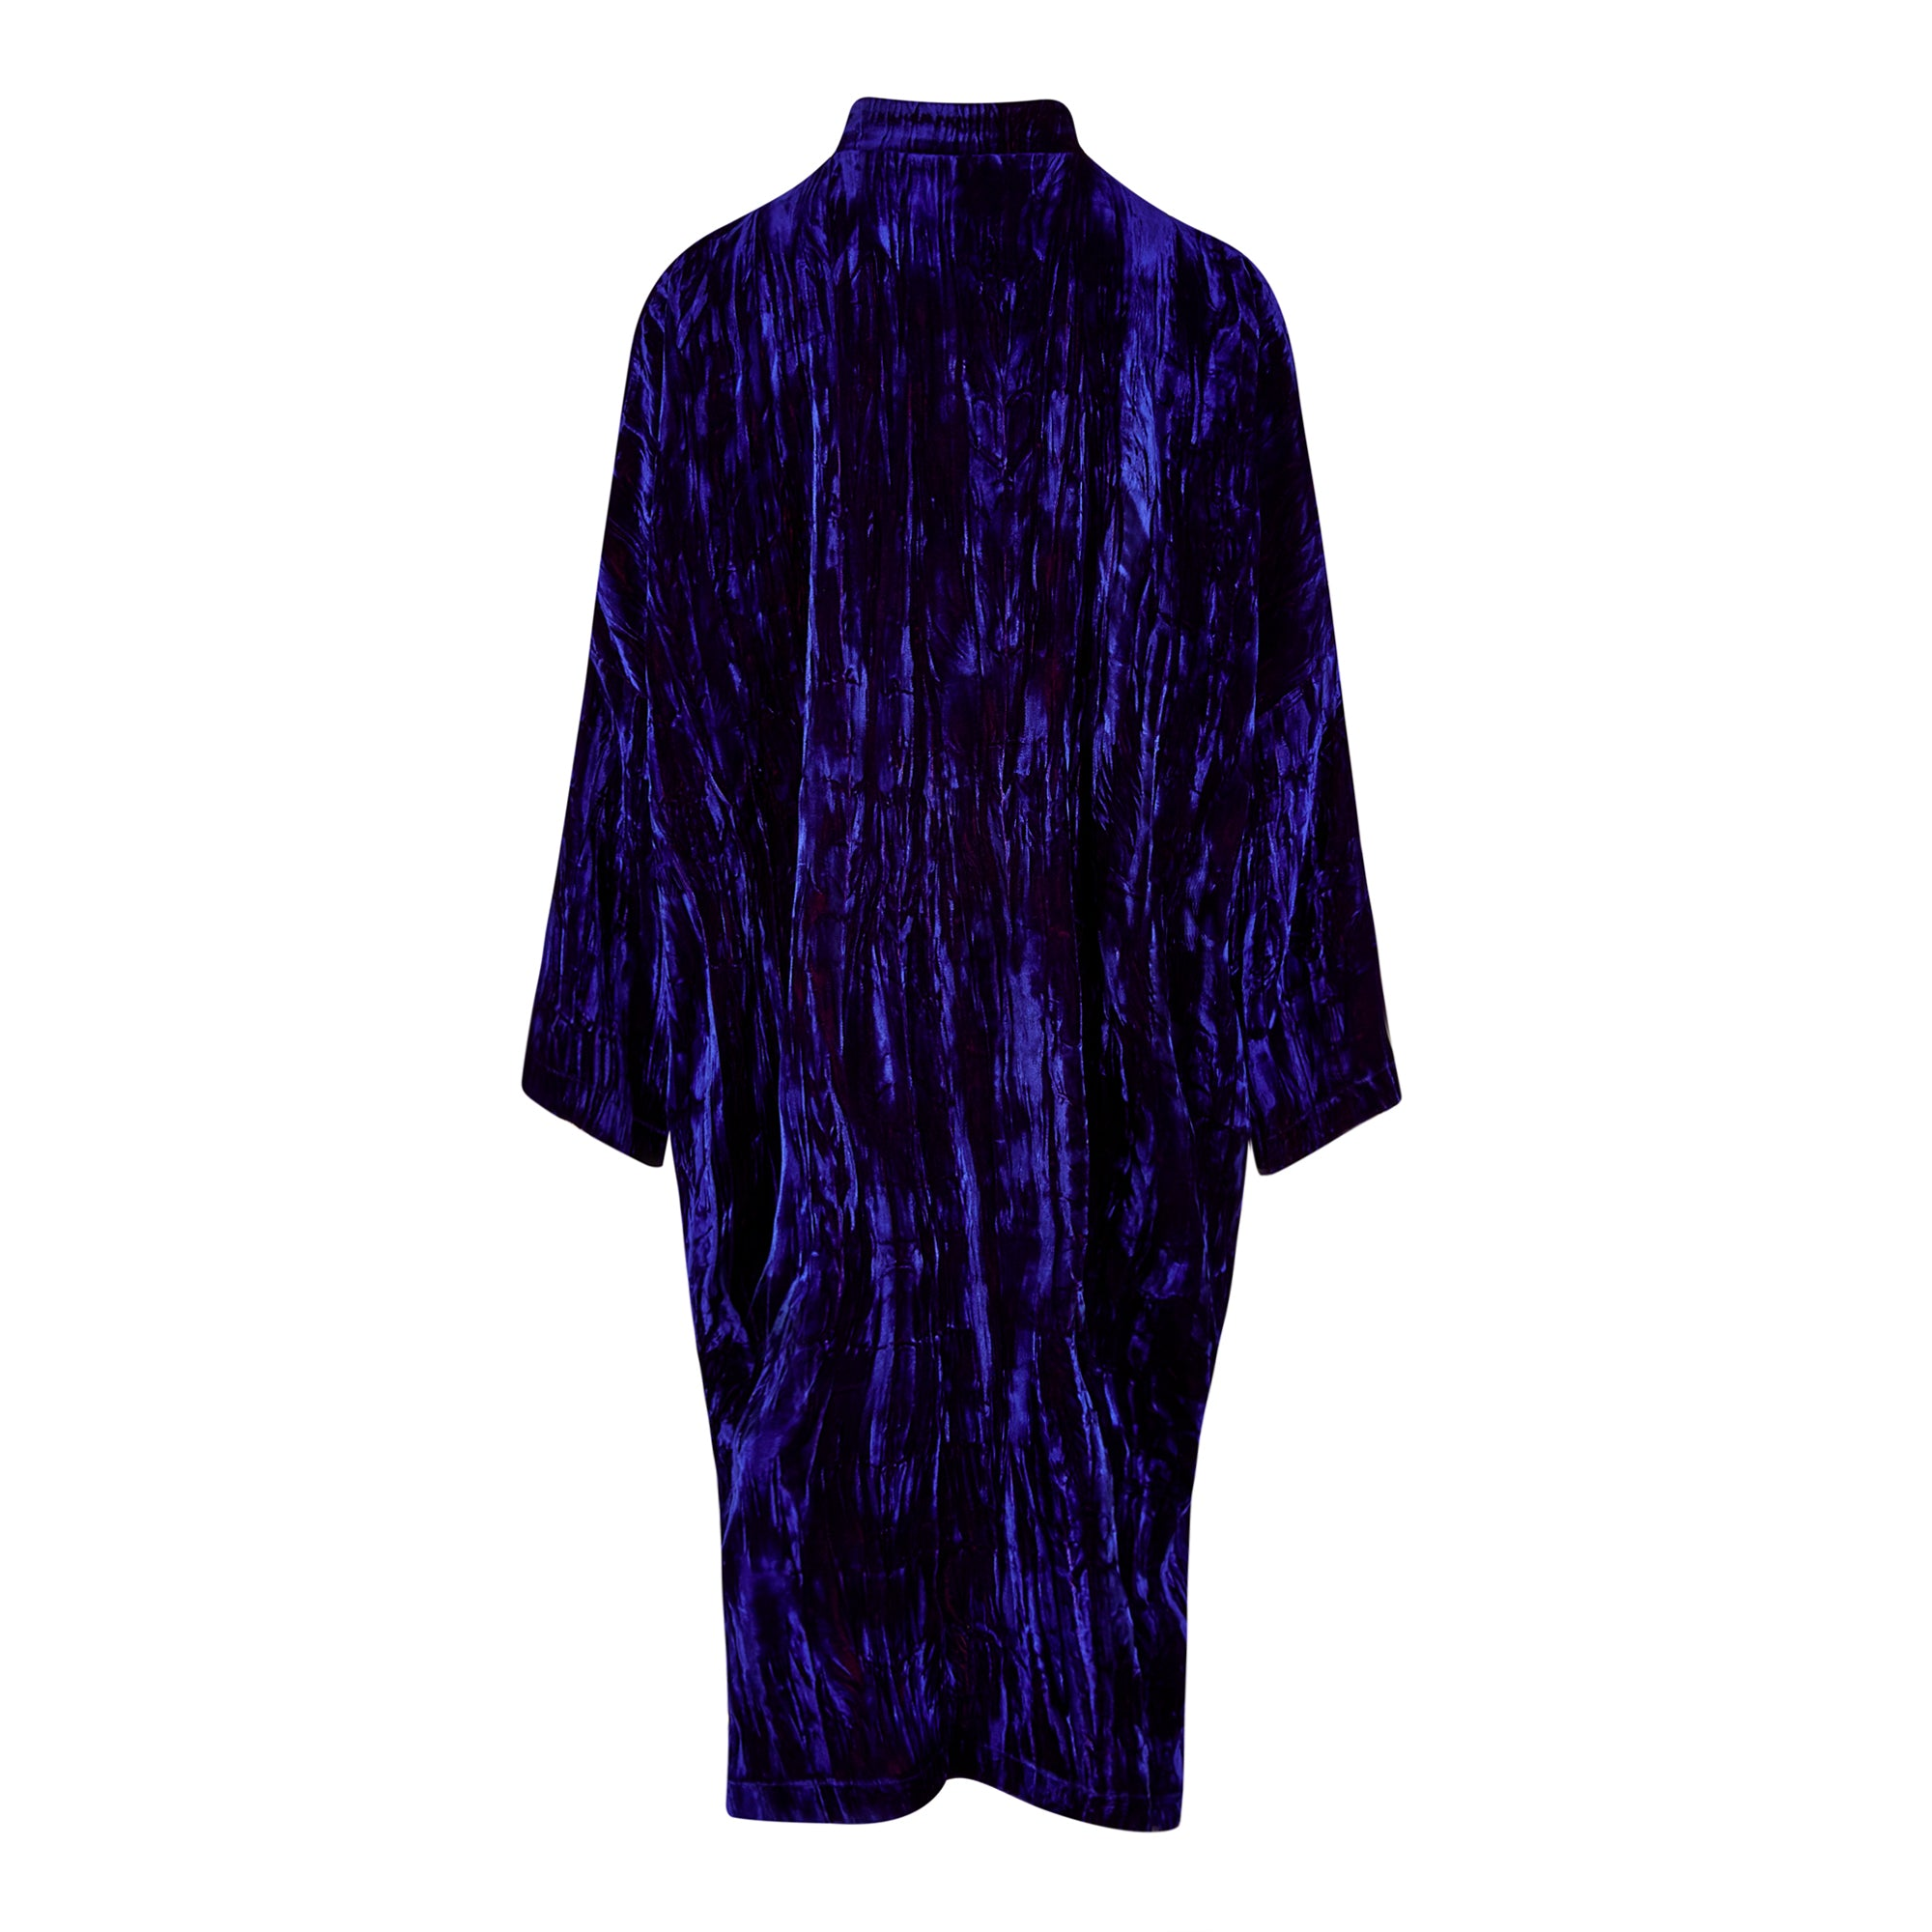 CRUSH-VELVET OVERSIZED SHIRT-COAT WITH POCKETS | MIDNIGHT BLUE